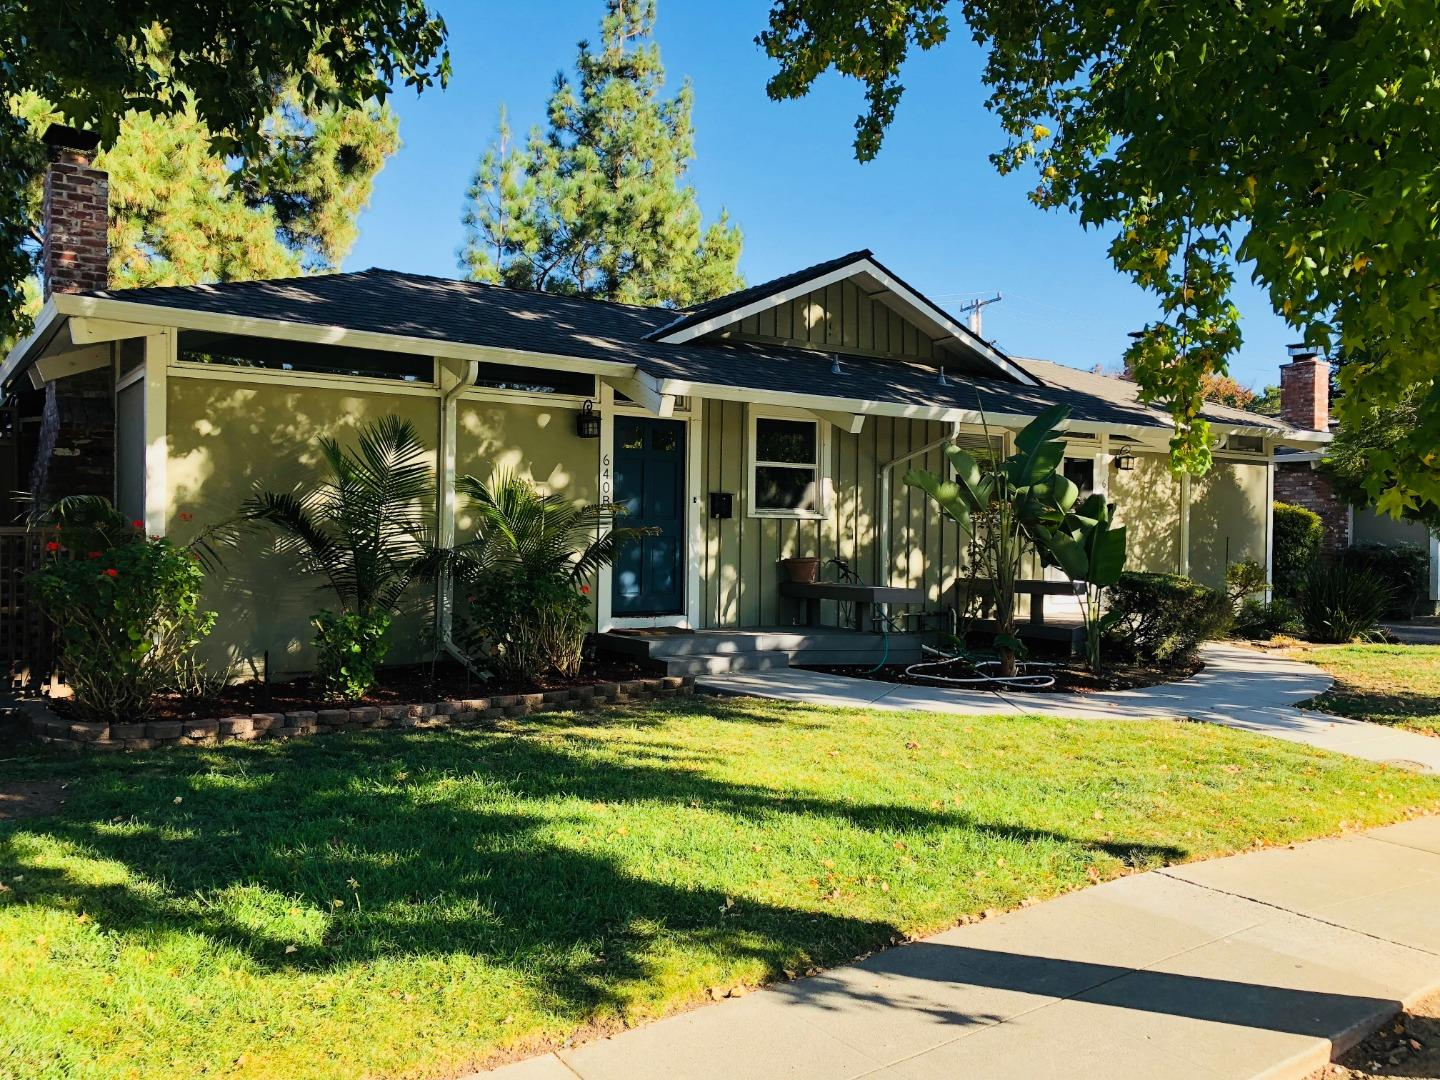 Located in the center of Silicon Valley, this quiet City of Campbell duplex home has it all!  Absolutely fantastic location, bright and beautifully updated, with vaulted ceilings, cozy fireplace, & remodeled bathrooms.  Upgrades galore including central air conditioning, cherry wood flooring, gorgeous patio decking, and custom stone pavers. Plenty of outdoor room to enjoy, relax and entertain. Wonderful, well-lit kitchen space and appliances. This home enjoys tons of natural light and a great floor plan, with a spacious living room, separate dining room and bonus enclosed patio room with skylight. Two bedrooms, master bedroom en suite is newly remodeled w/ new shower and vanity w/ dual closets, glass door to patio. Central hallway w/ indoor laundry nook with combo washer/dryer, plus another wonderfully updated bathroom. Close to downtown Campbell, Valley Fair/ Santana Row, San Tomas Expressway & major freeways.  This home is freshly landscaped & has its own carport & locked storage.